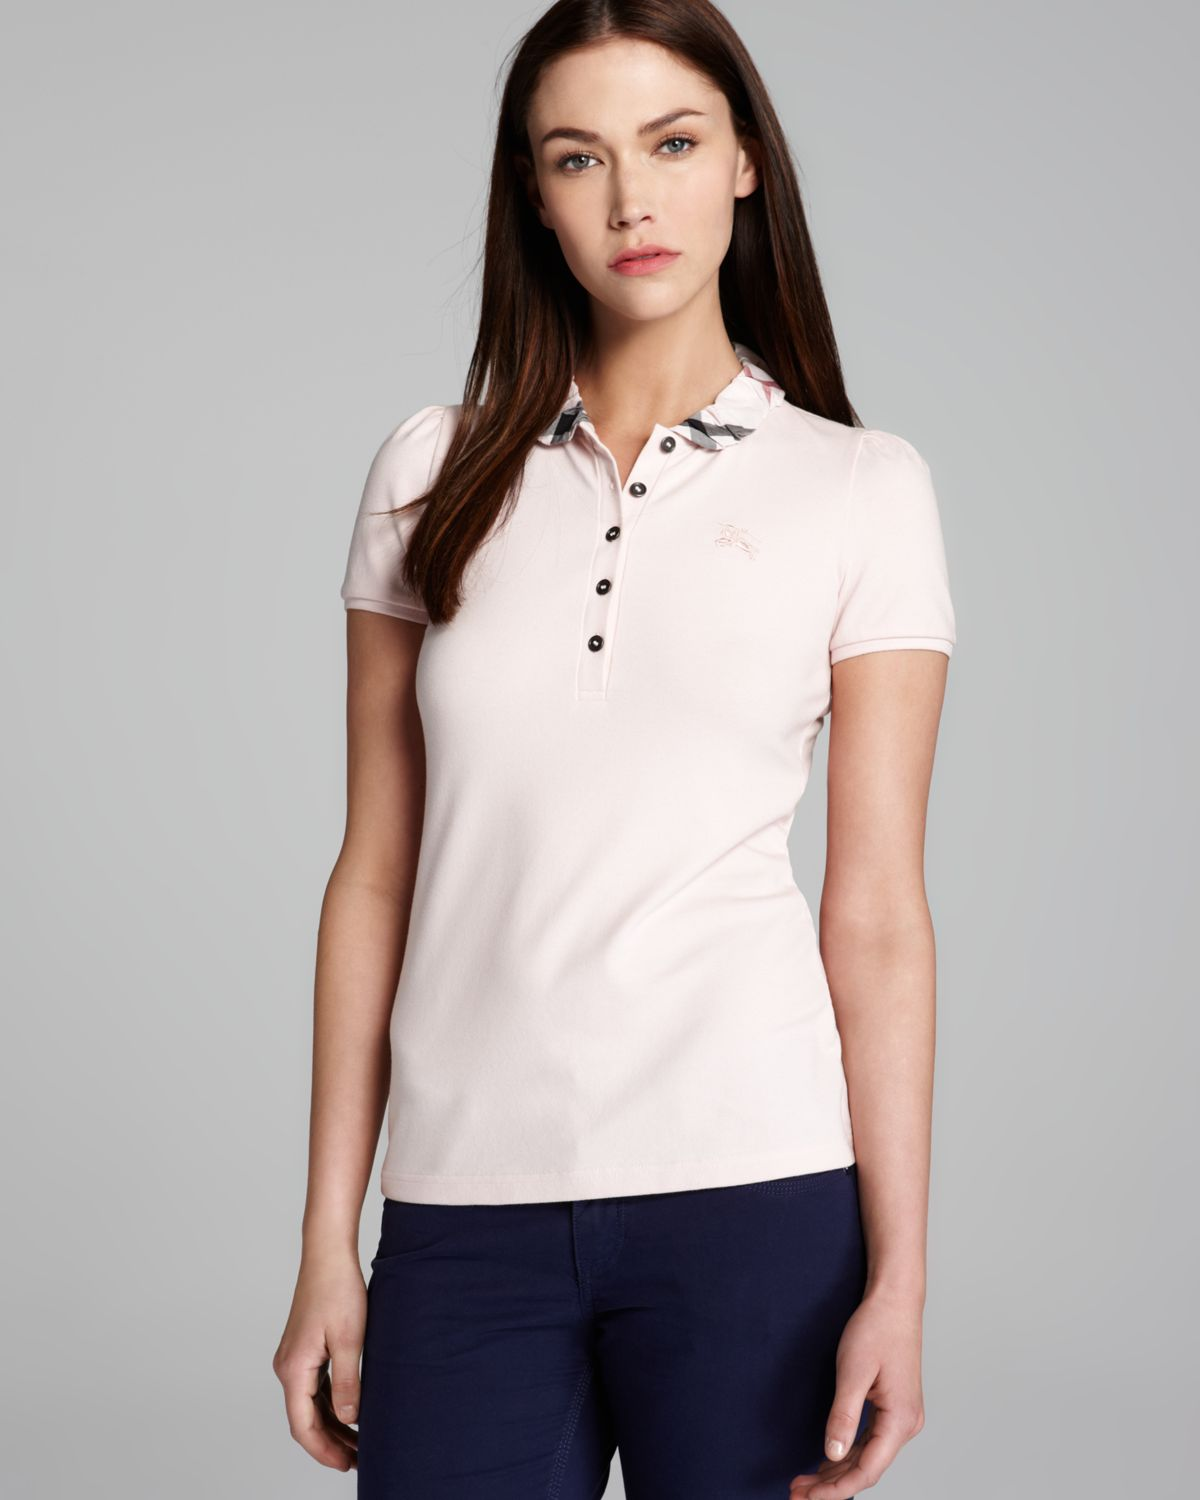 Burberry Brit Polo Shirt With Check Collar In White Ice